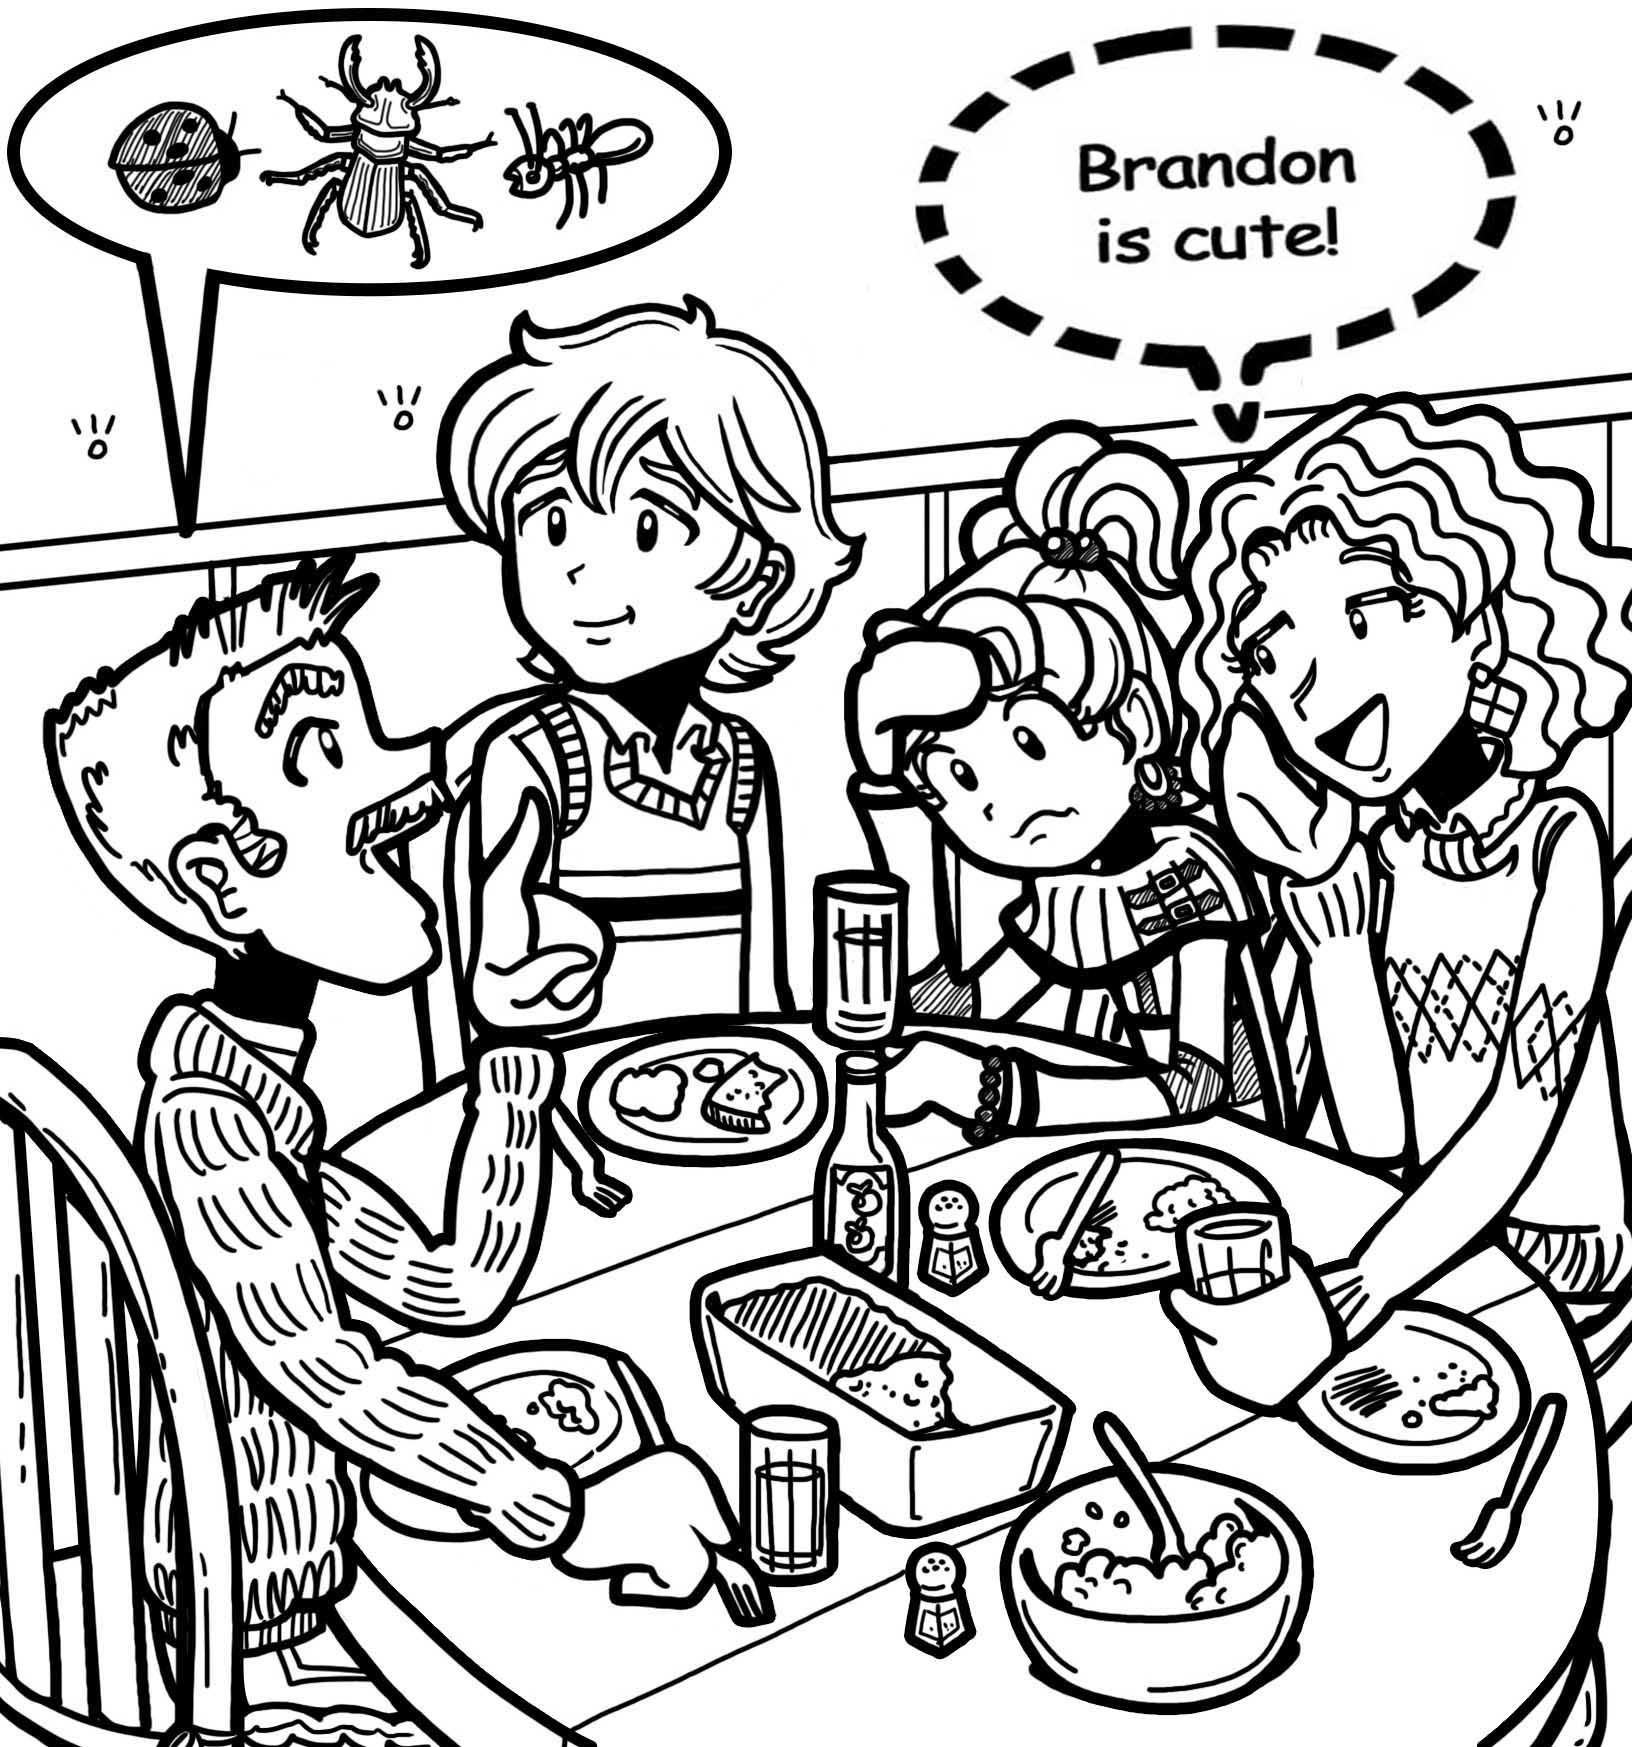 Coloring pages for dork diaries - Image Brandon And Nikki S Family Jpg The Dork Diaries Wiki Fandom Powered By Wikia